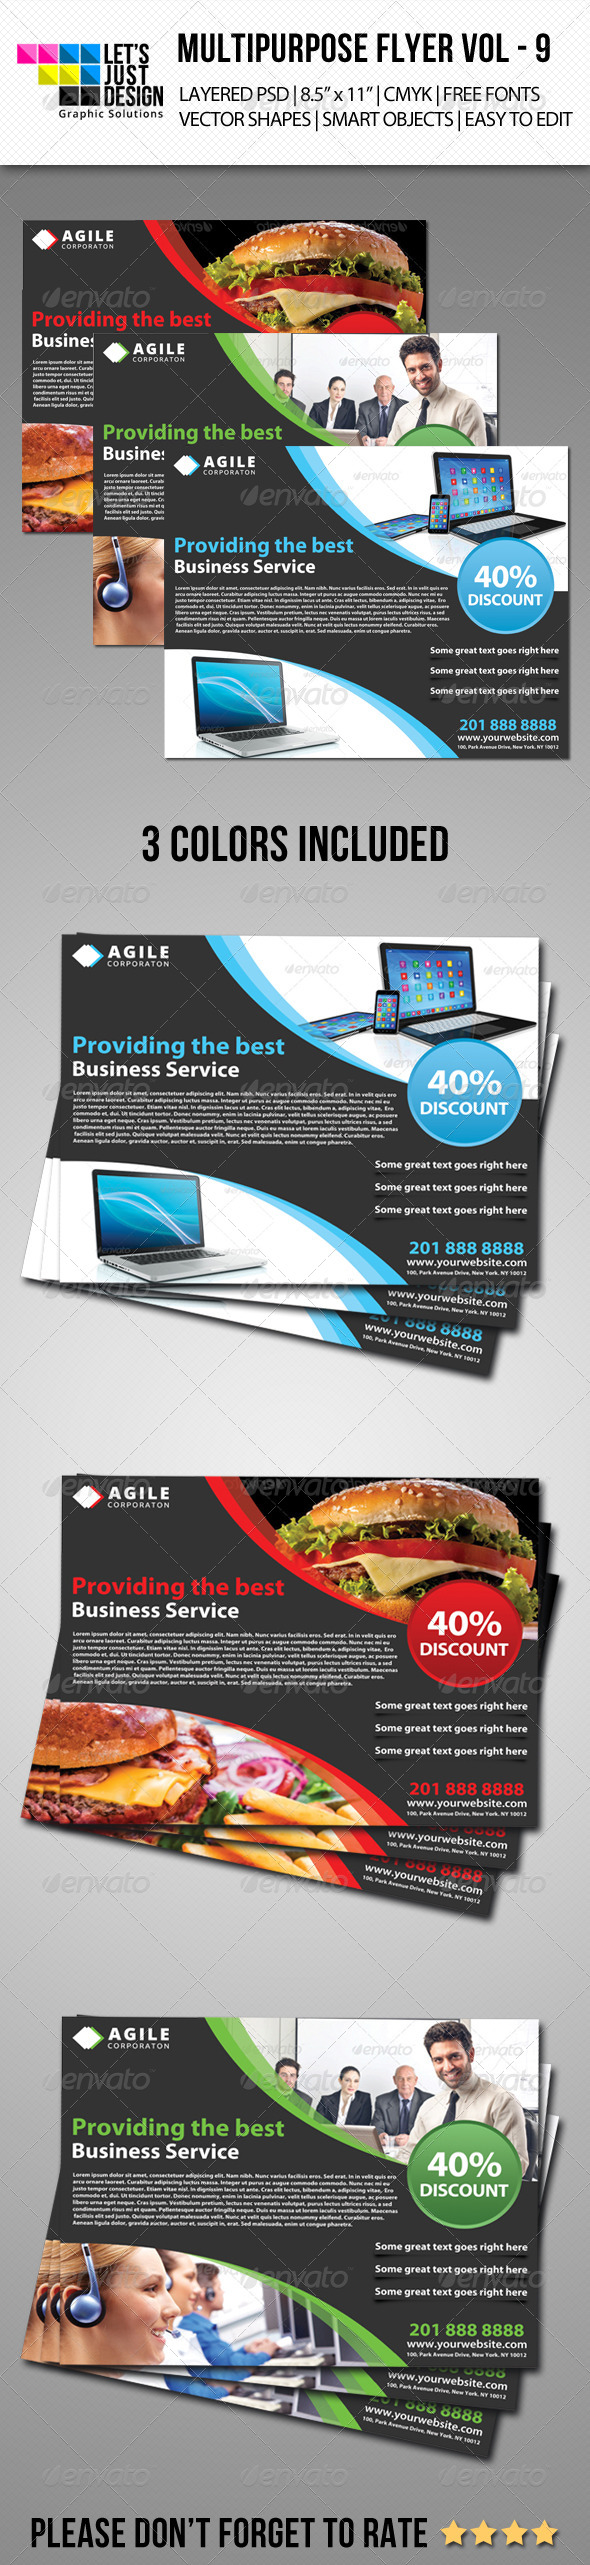 Multipurpose Flyer Template Vol 9  - Corporate Flyers